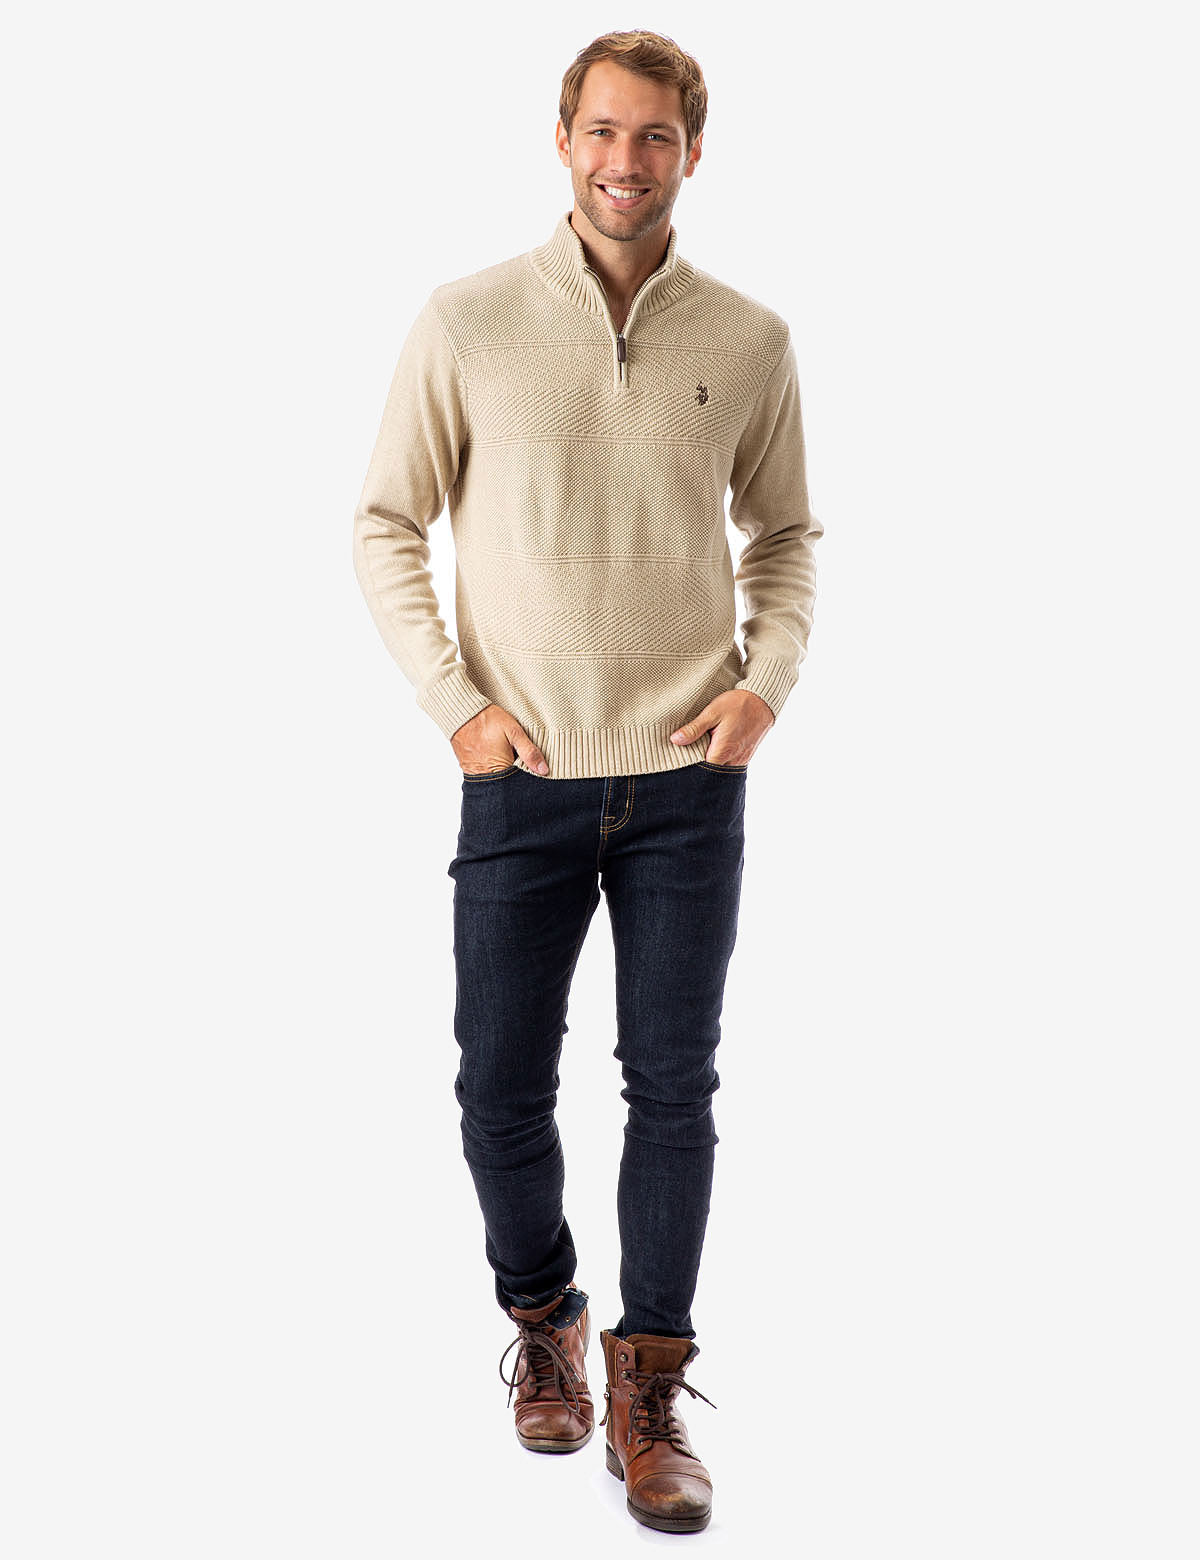 TEXTURED STRIPE 1/4 ZIP SWEATER - U.S. Polo Assn.